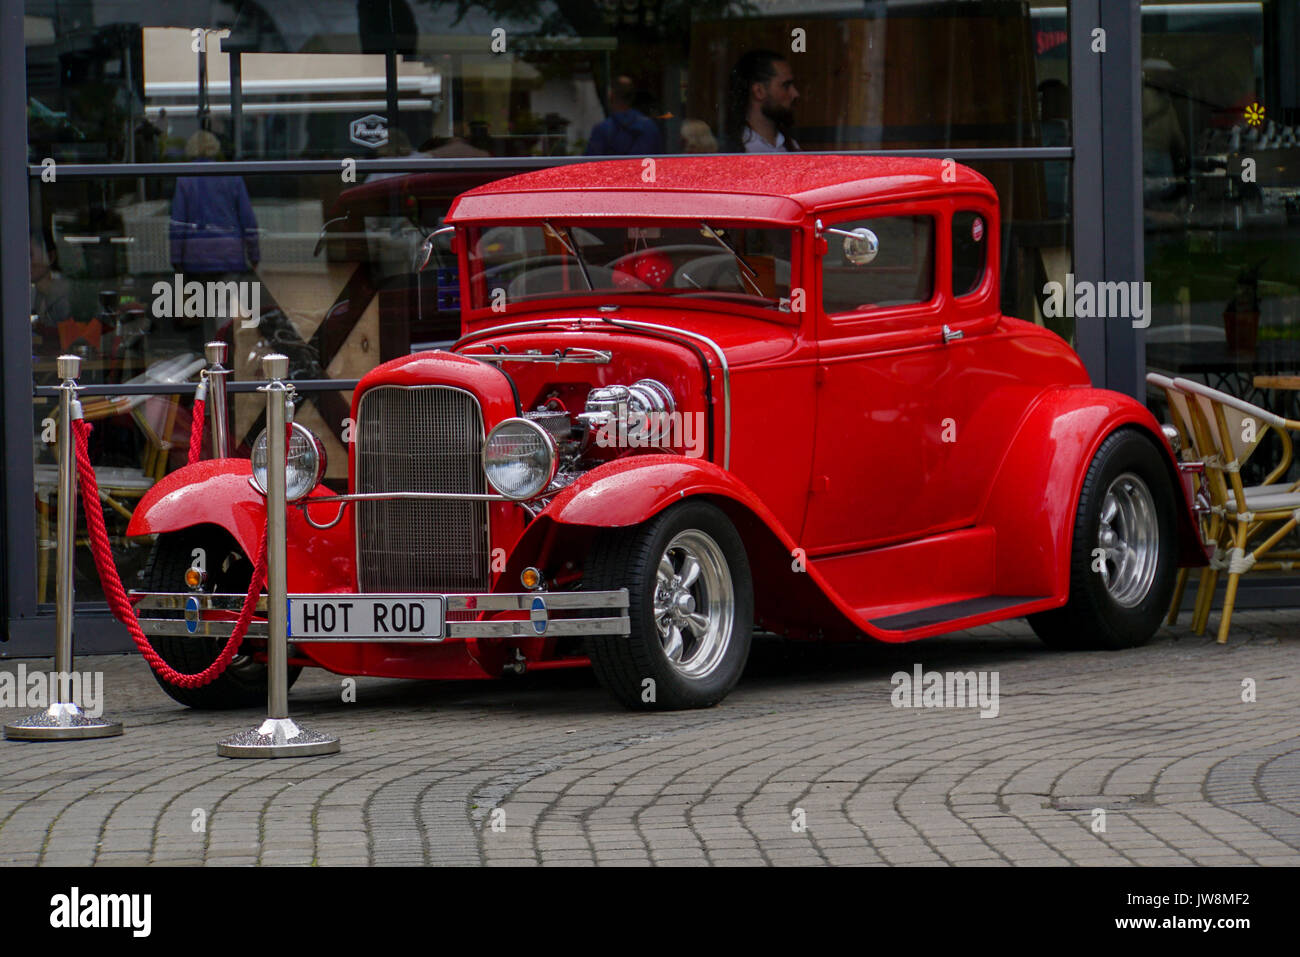 Old Ford Coupe Hot Rod Classic Car on display in Riga, Latvia ...